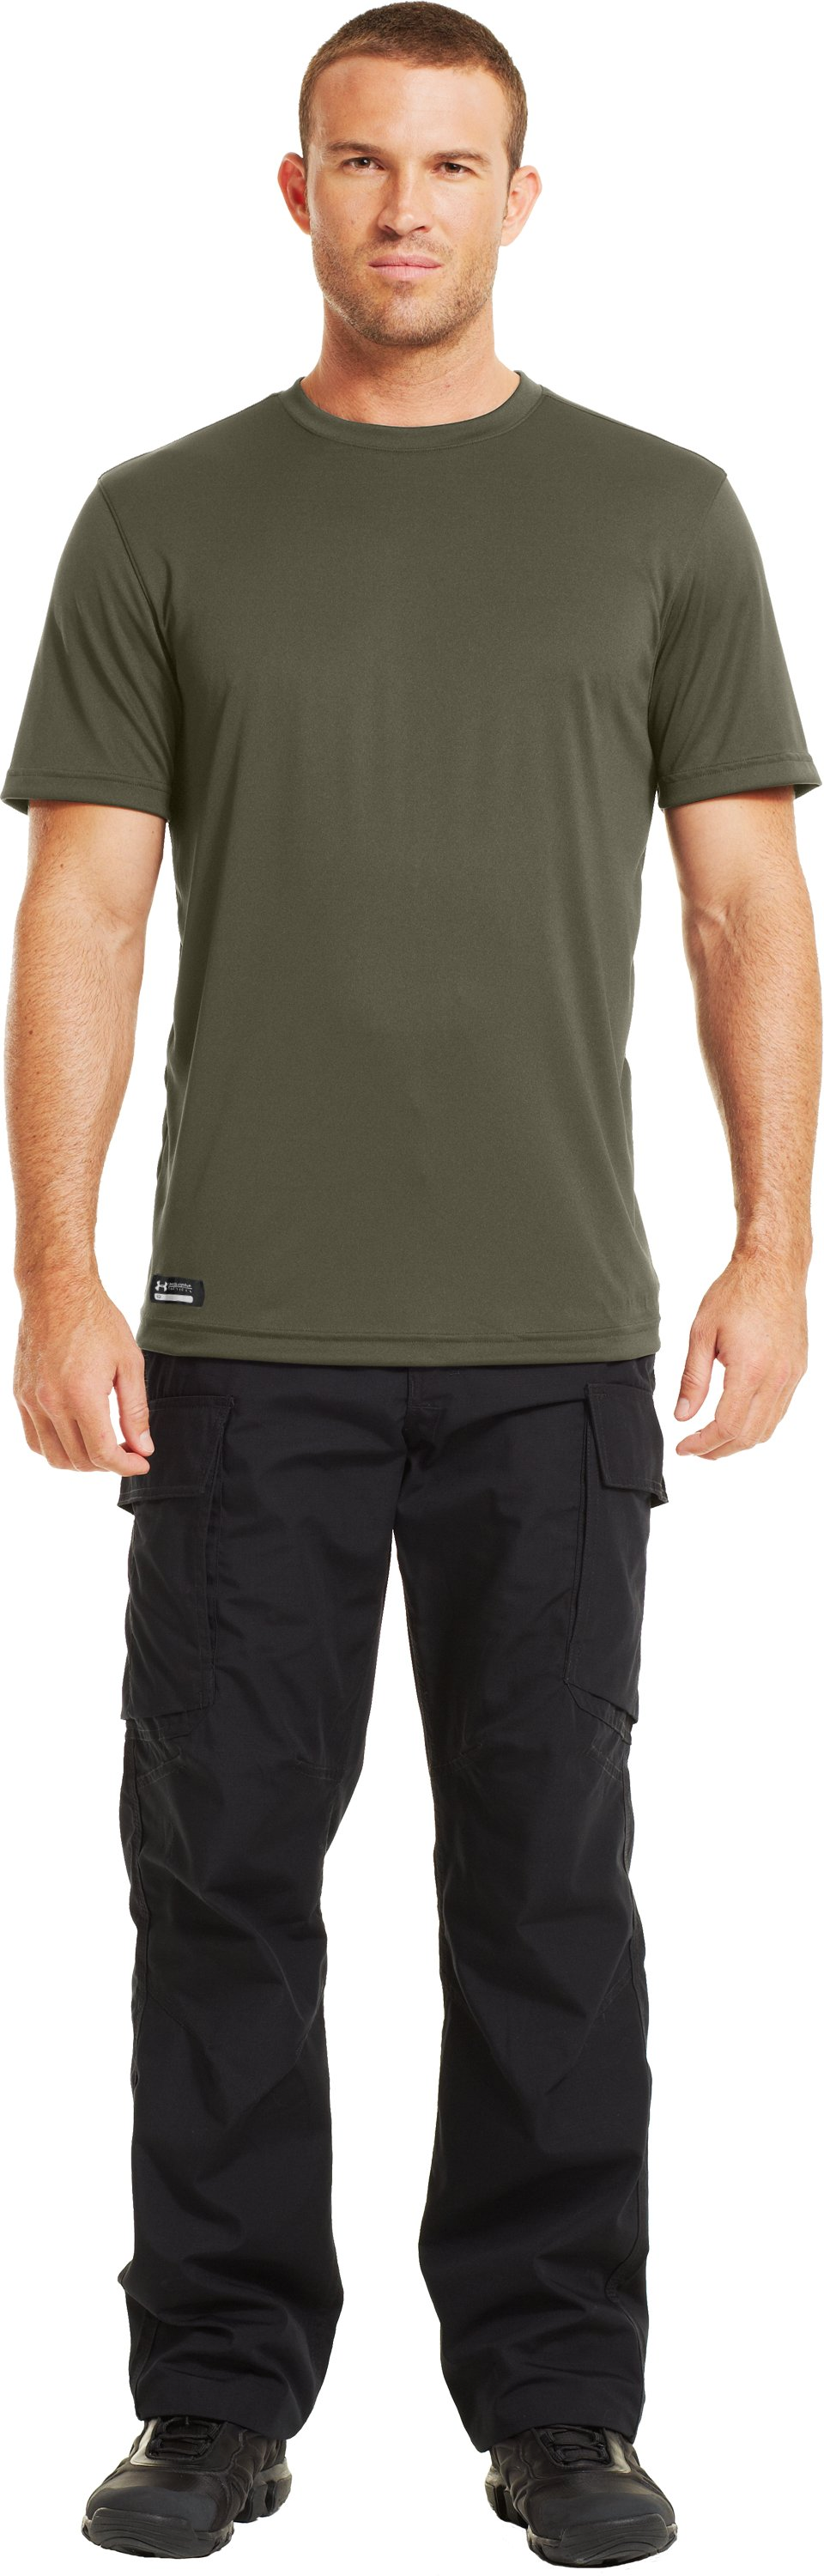 Men's HeatGear® Tactical Short Sleeve T-Shirt, Marine OD Green, Front